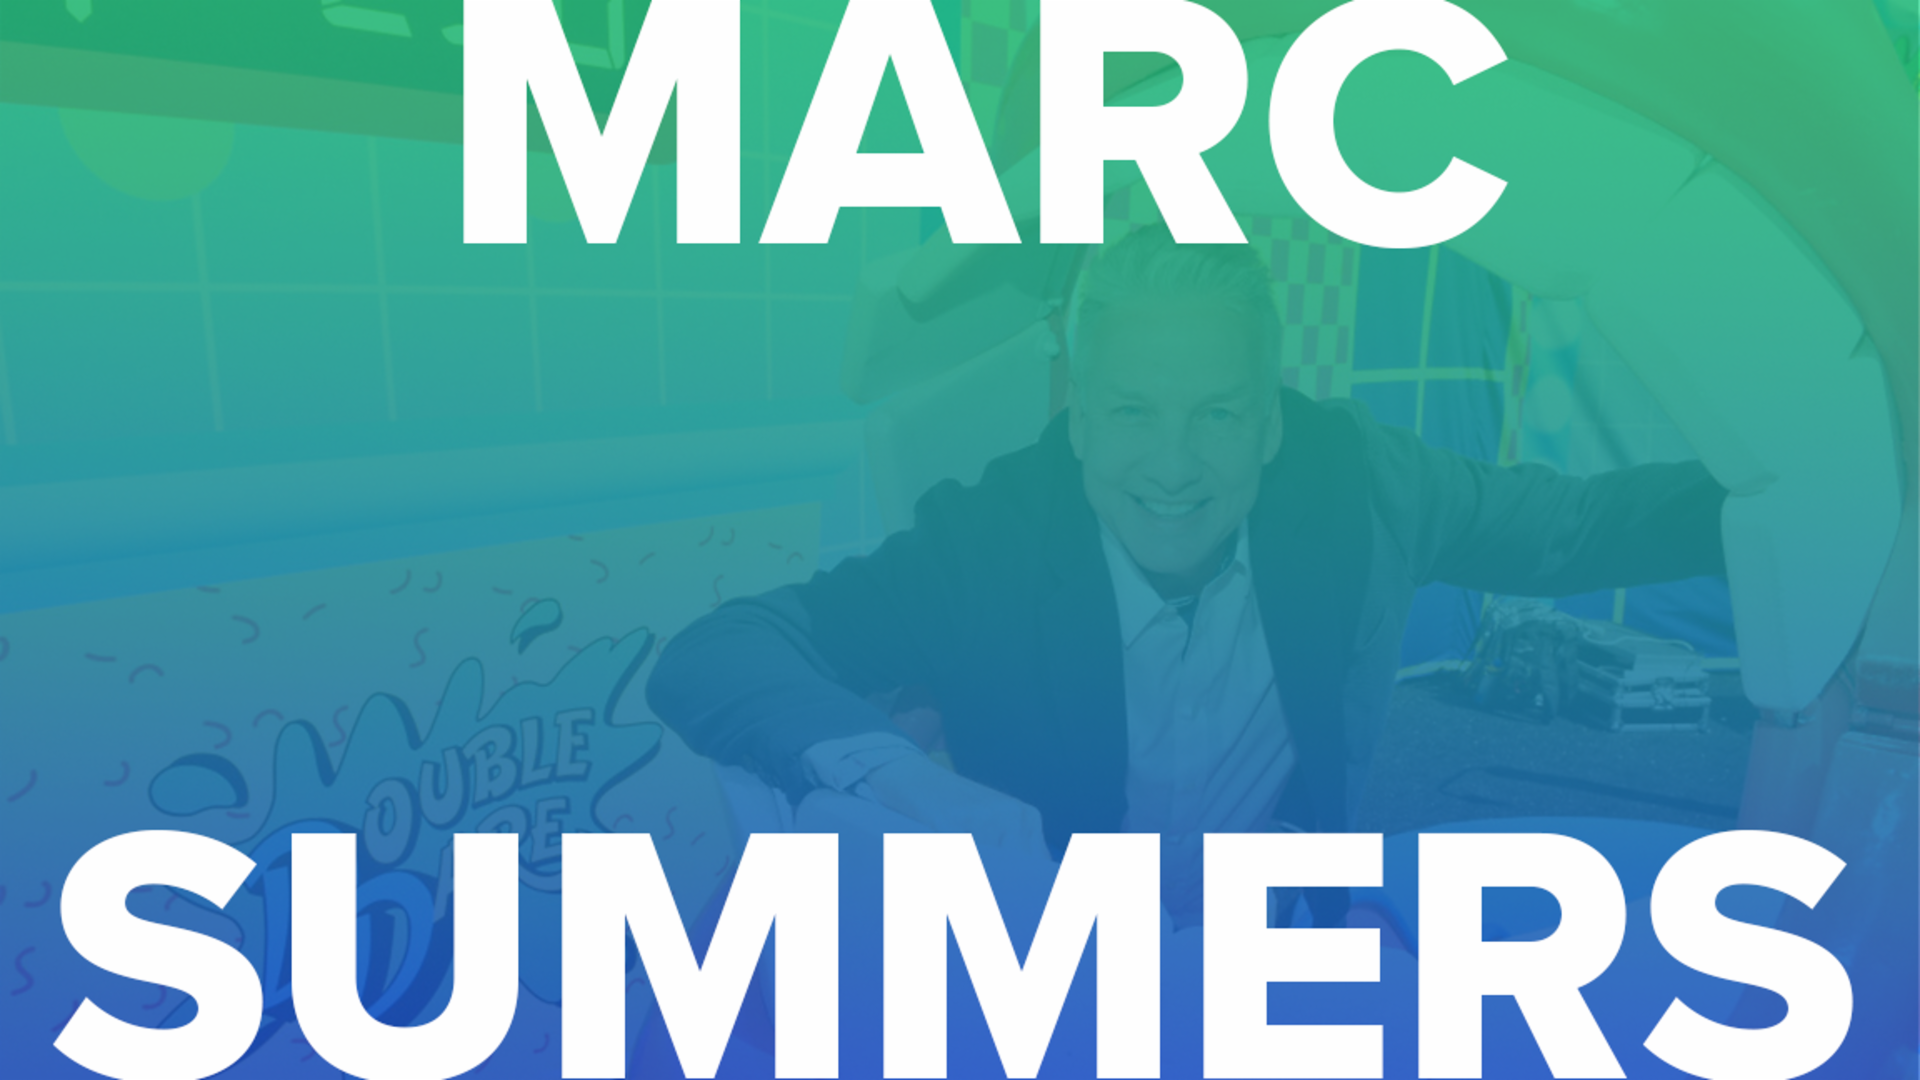 Exclusive Interview with Marc Summers screen capture